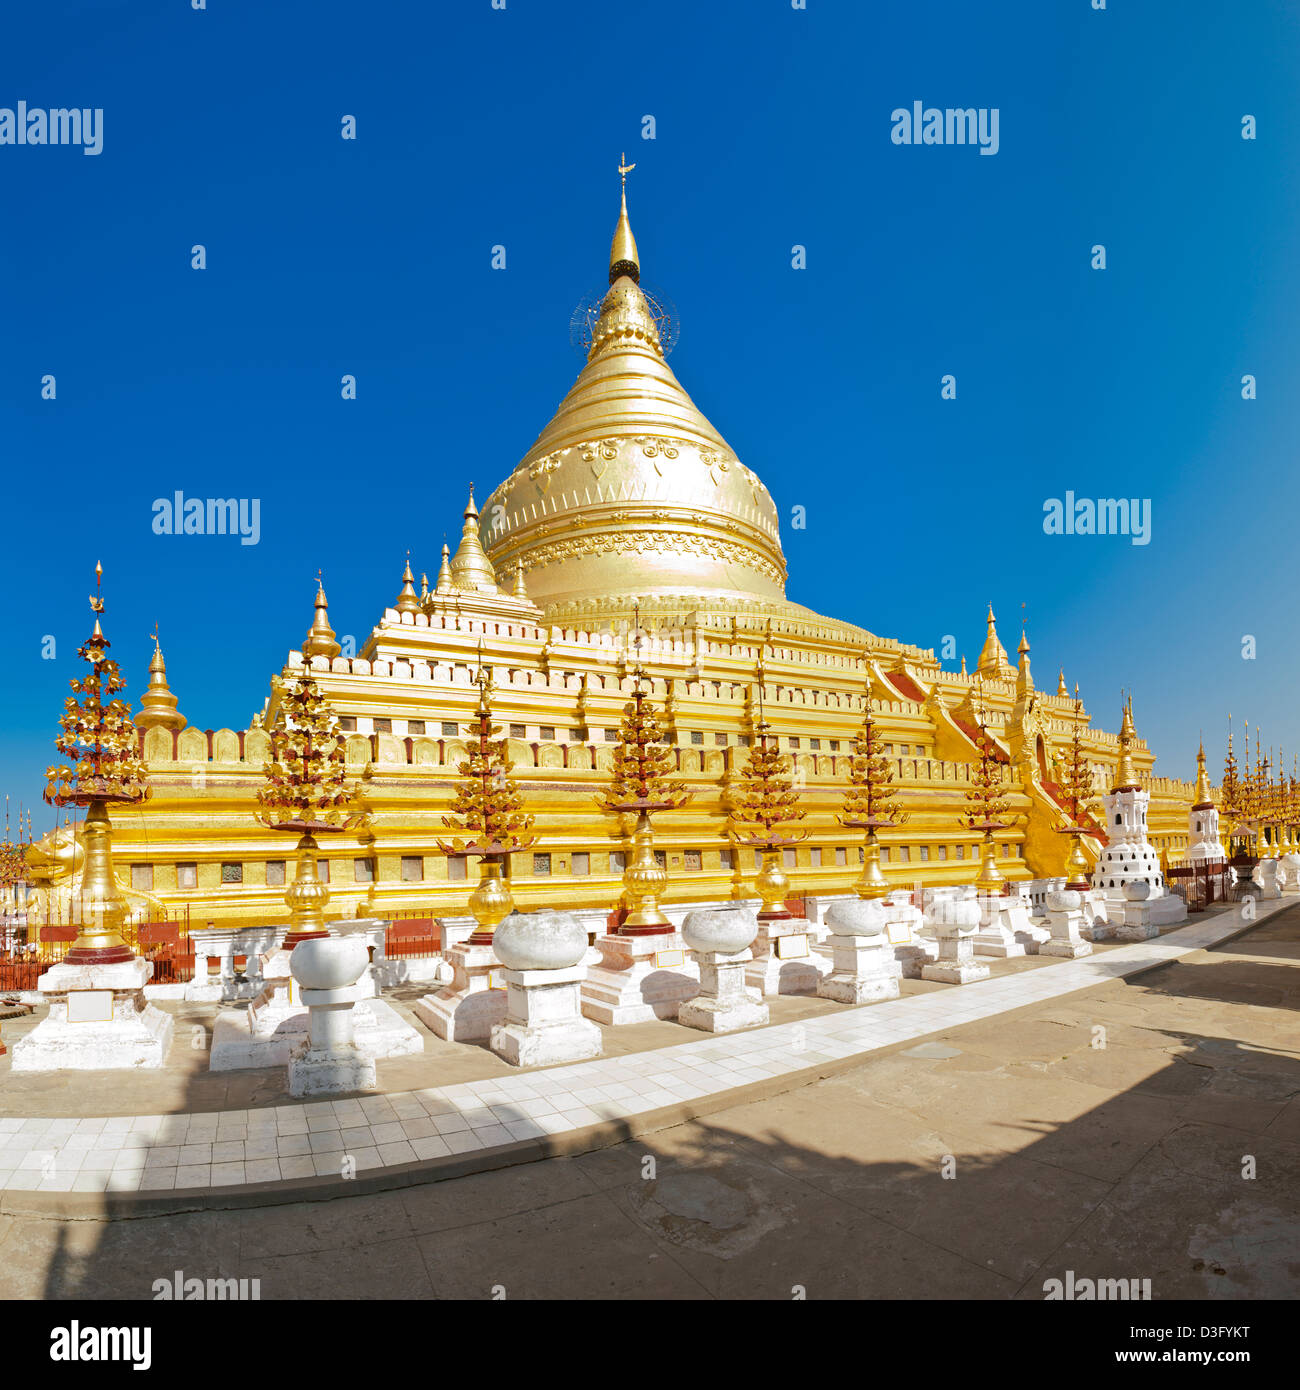 11th Century Shwezigon Pagoda in Bagan in Myanmar (formerly Burma). This is a stitch of several images. Stock Photo